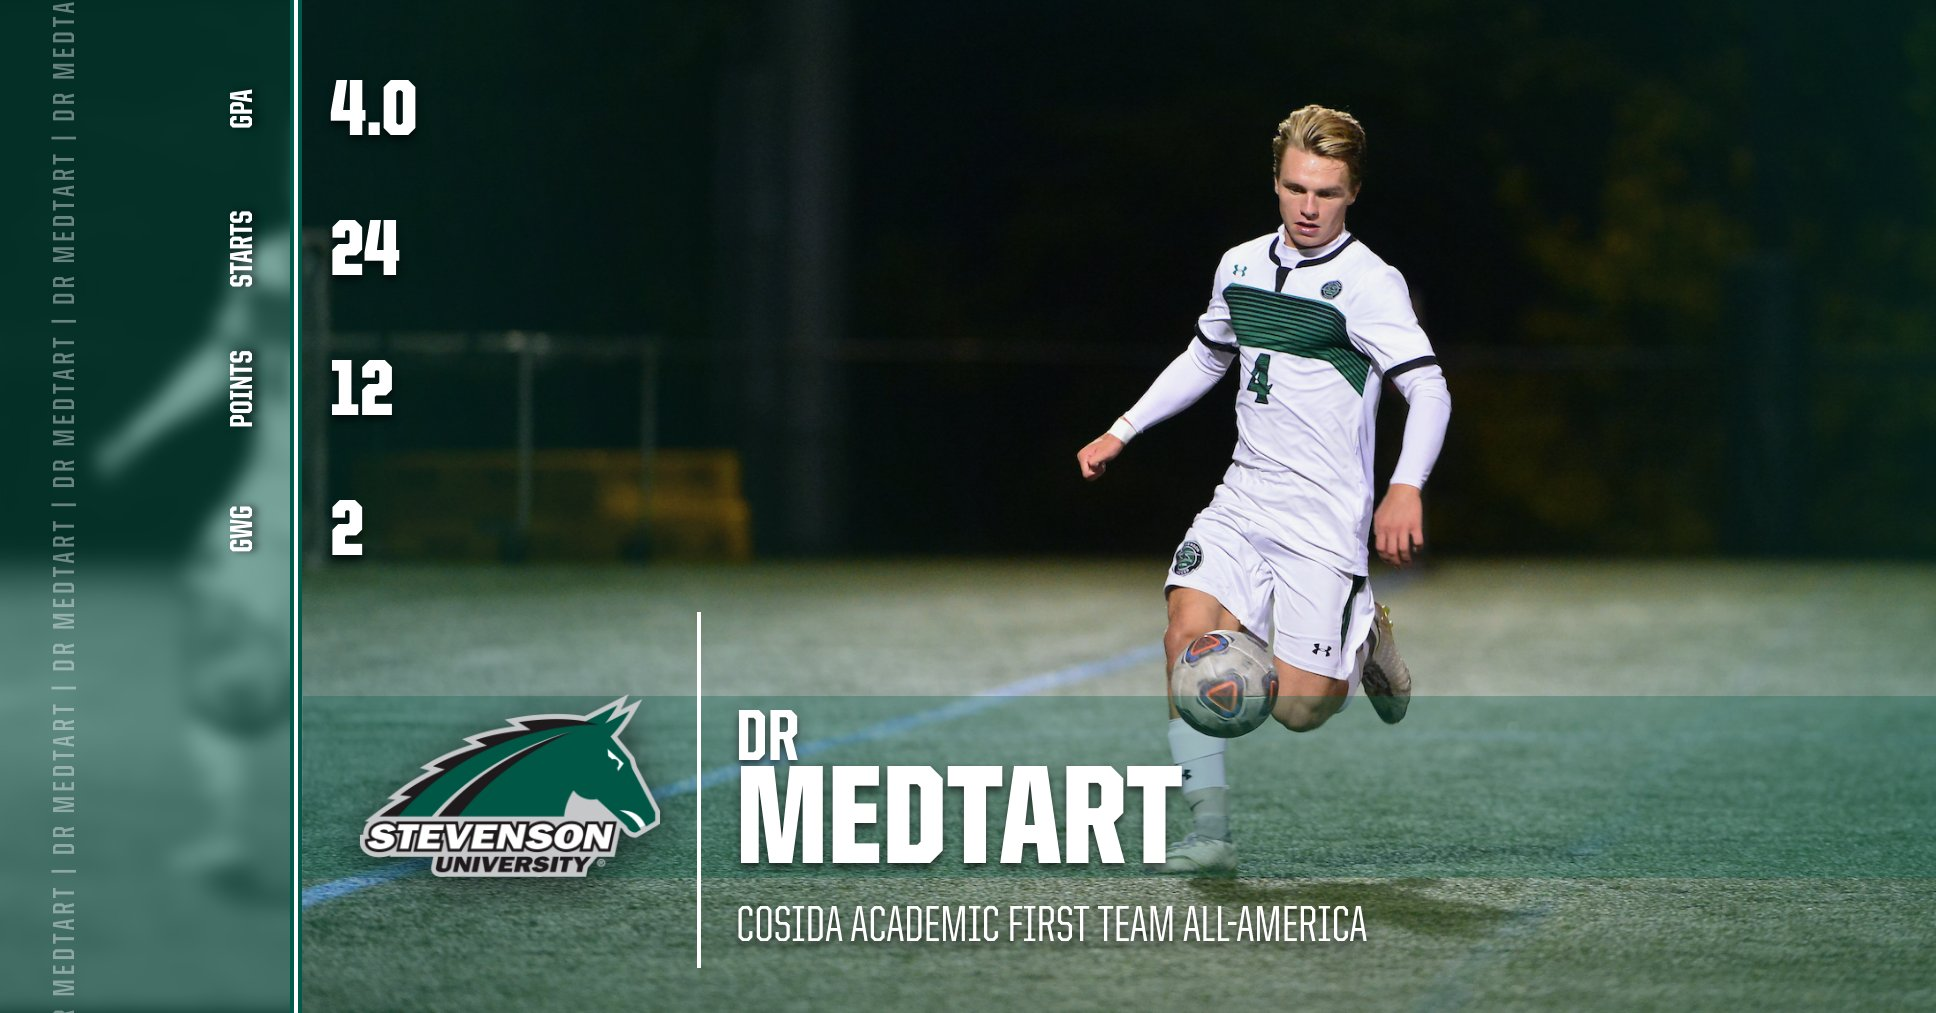 DR Medtart Named CoSIDA Academic First Team All-America